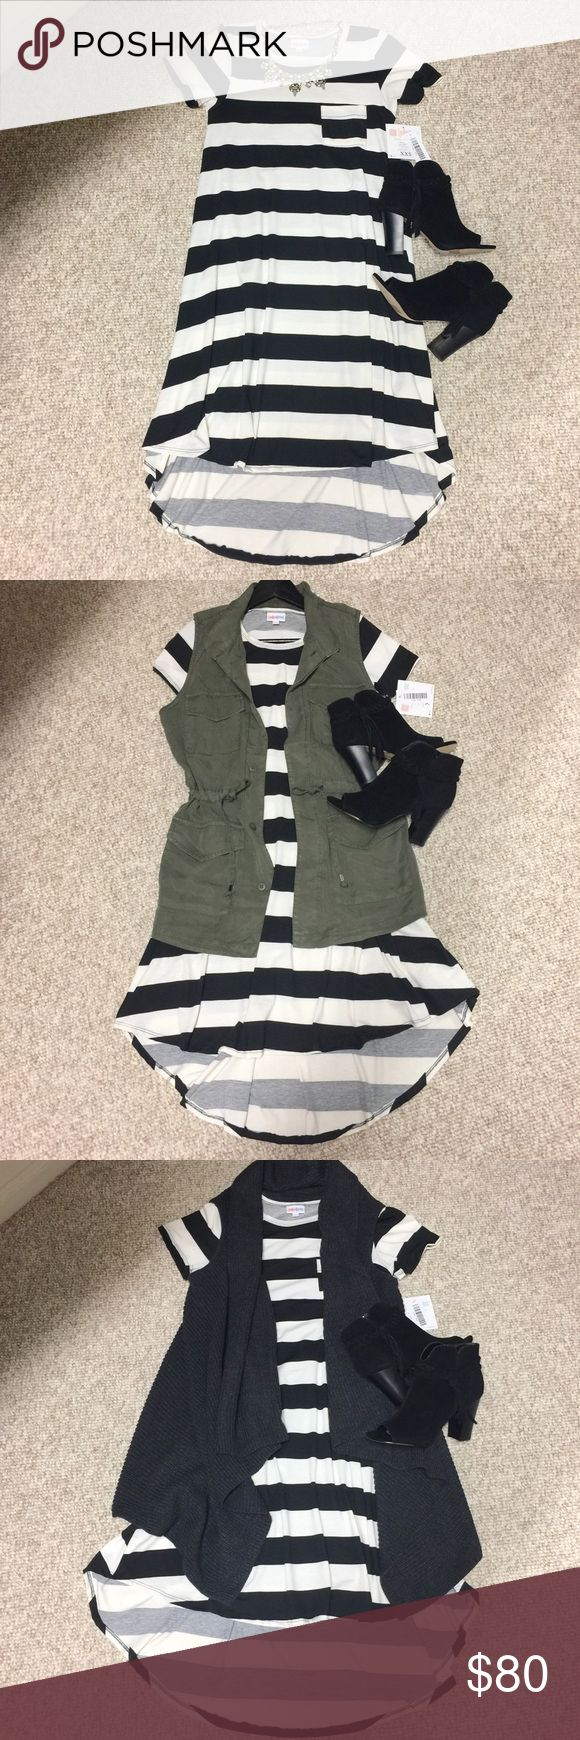 NWT Lularoe Black & White Stripe Carly Dress XXS This is a super adorable NWT Lularoe Carly Dress. It is black and white/cream stripe. Size XXS. This is a hard to find piece and a must have for year around. So cute!!!  Throw on a pair of black leggings or tights for the colder months and during the warmer months, flip flops or black wedges. Such a versatile dress. Comes from a smoke free and pet free home. No trades and price is firm as Posh takes their cut too. Thank you for looking and…